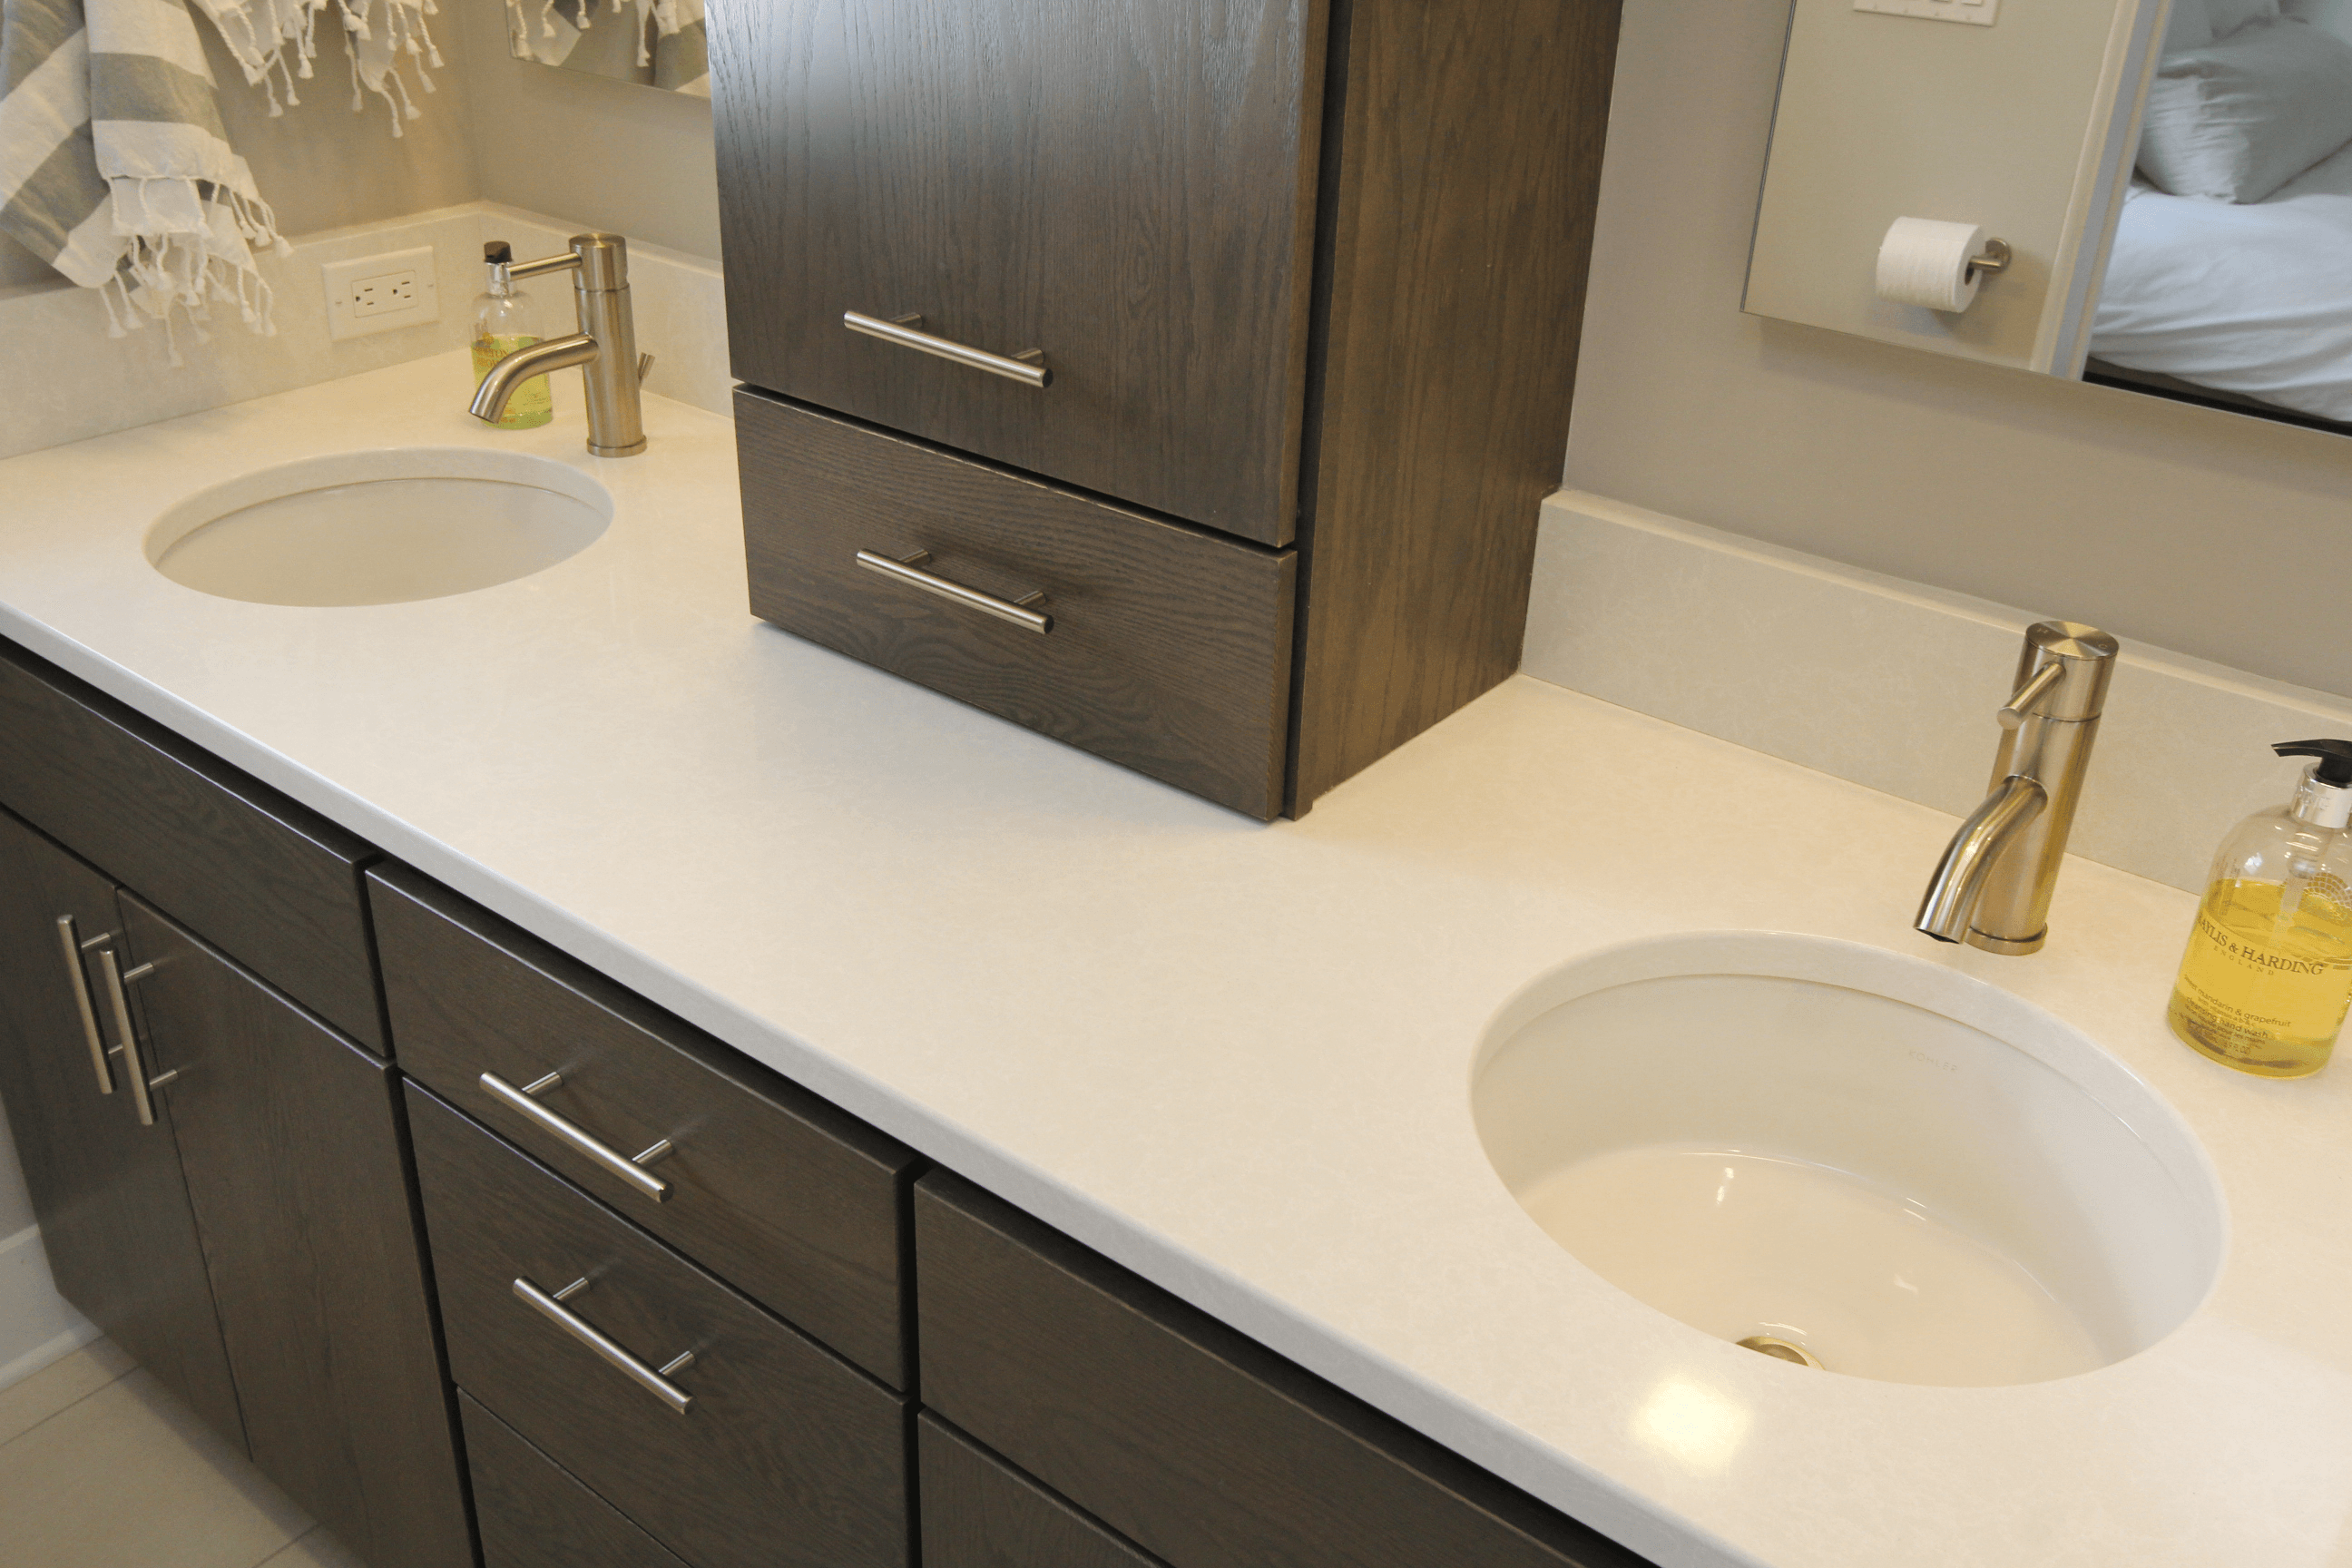 Quartz Countertop On Bathroom Vanity